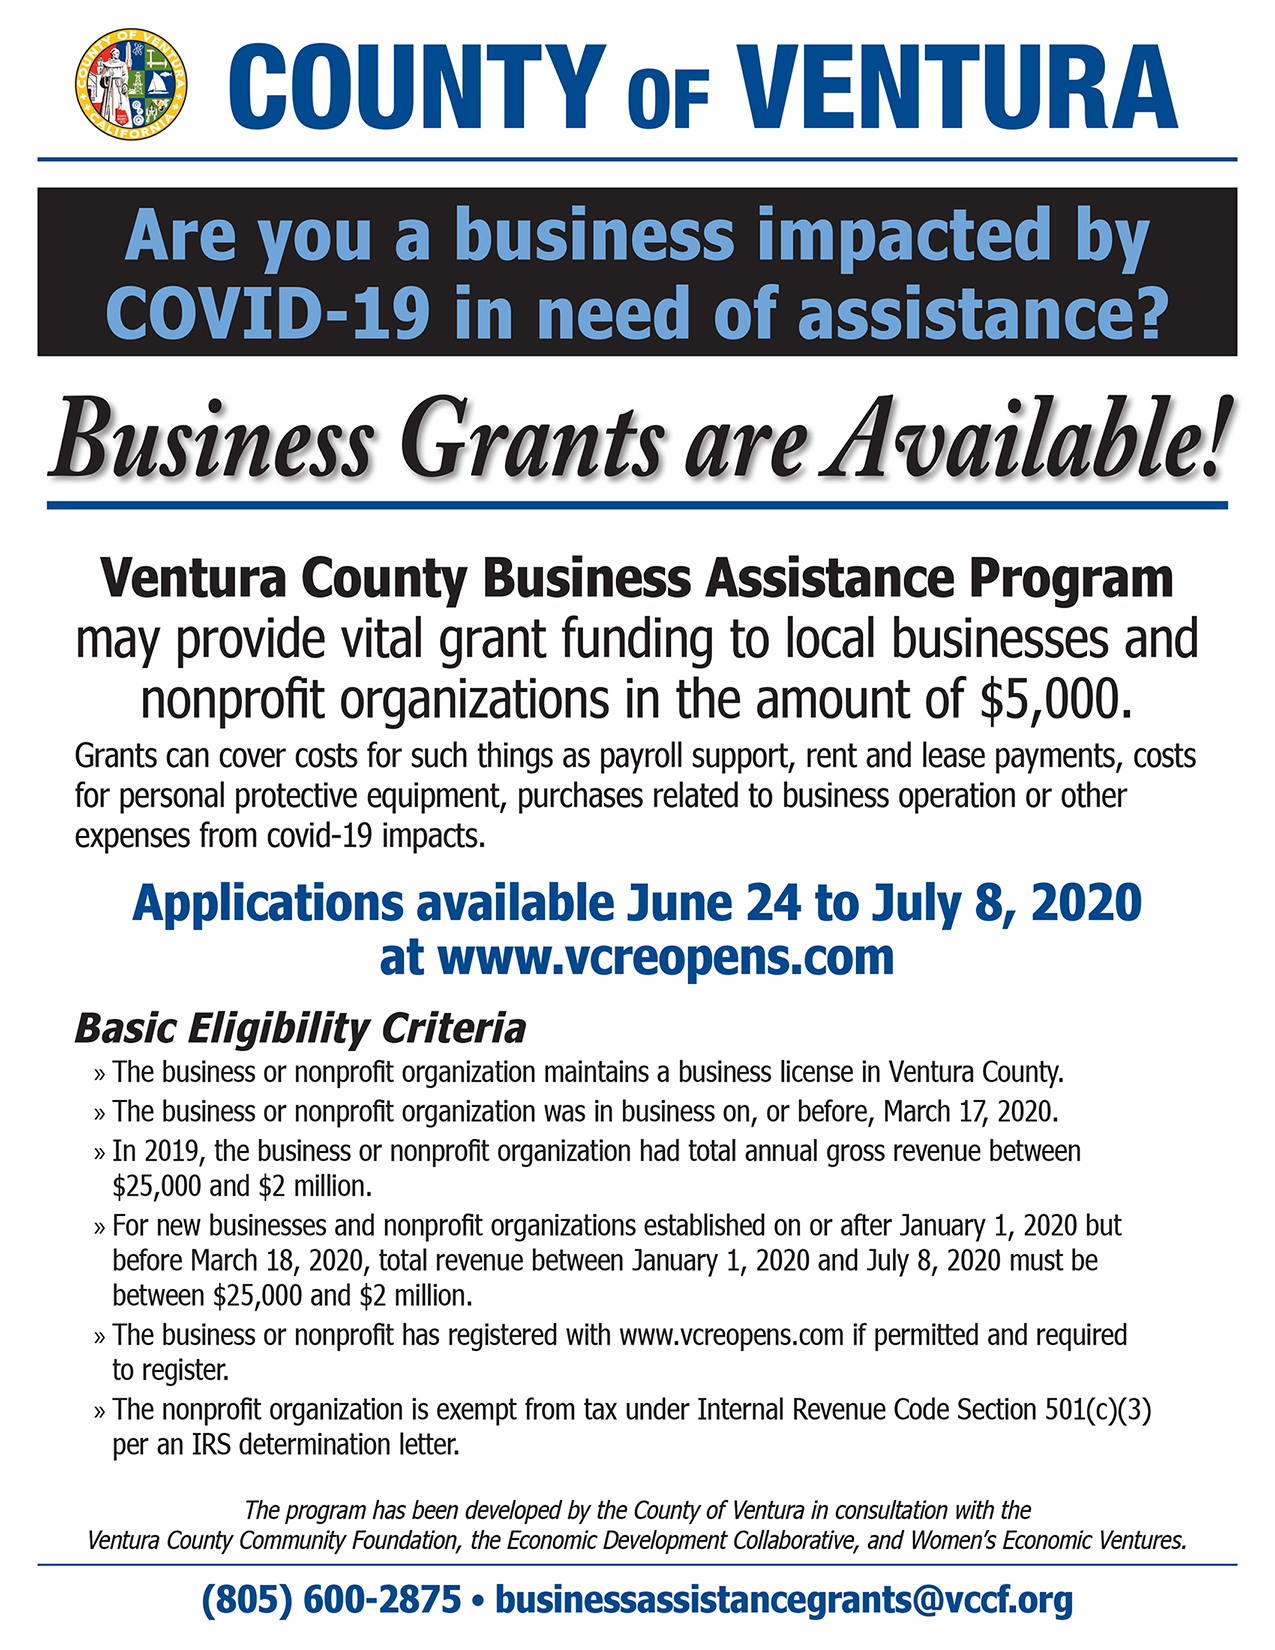 Business Grants are Available